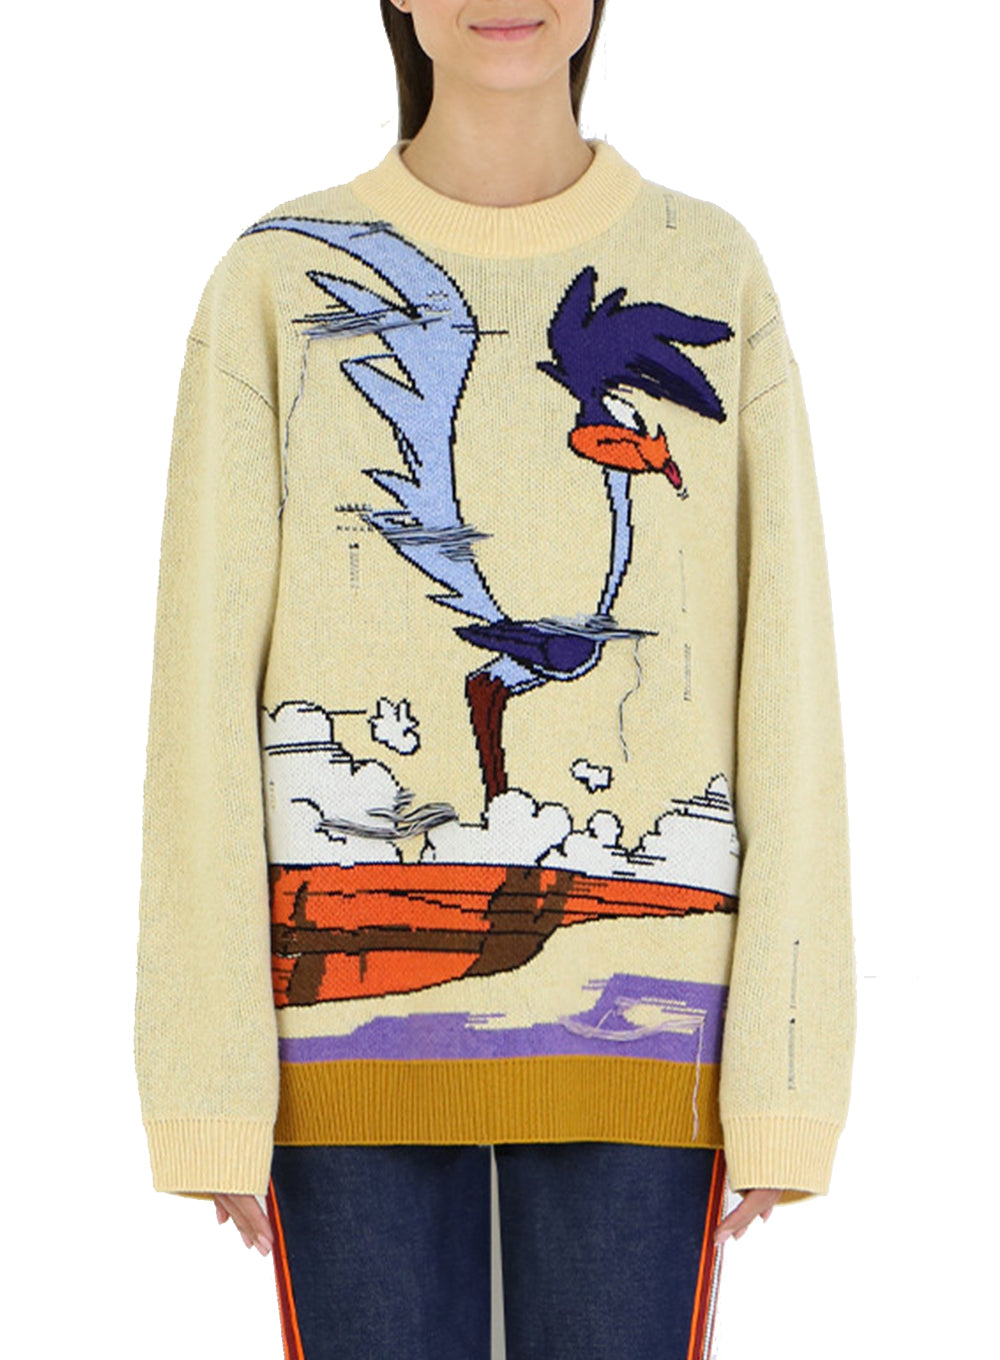 CALVIN KLEIN 205W39NYC | Looney Tunes Knit Crewneck Sweater in Yellow